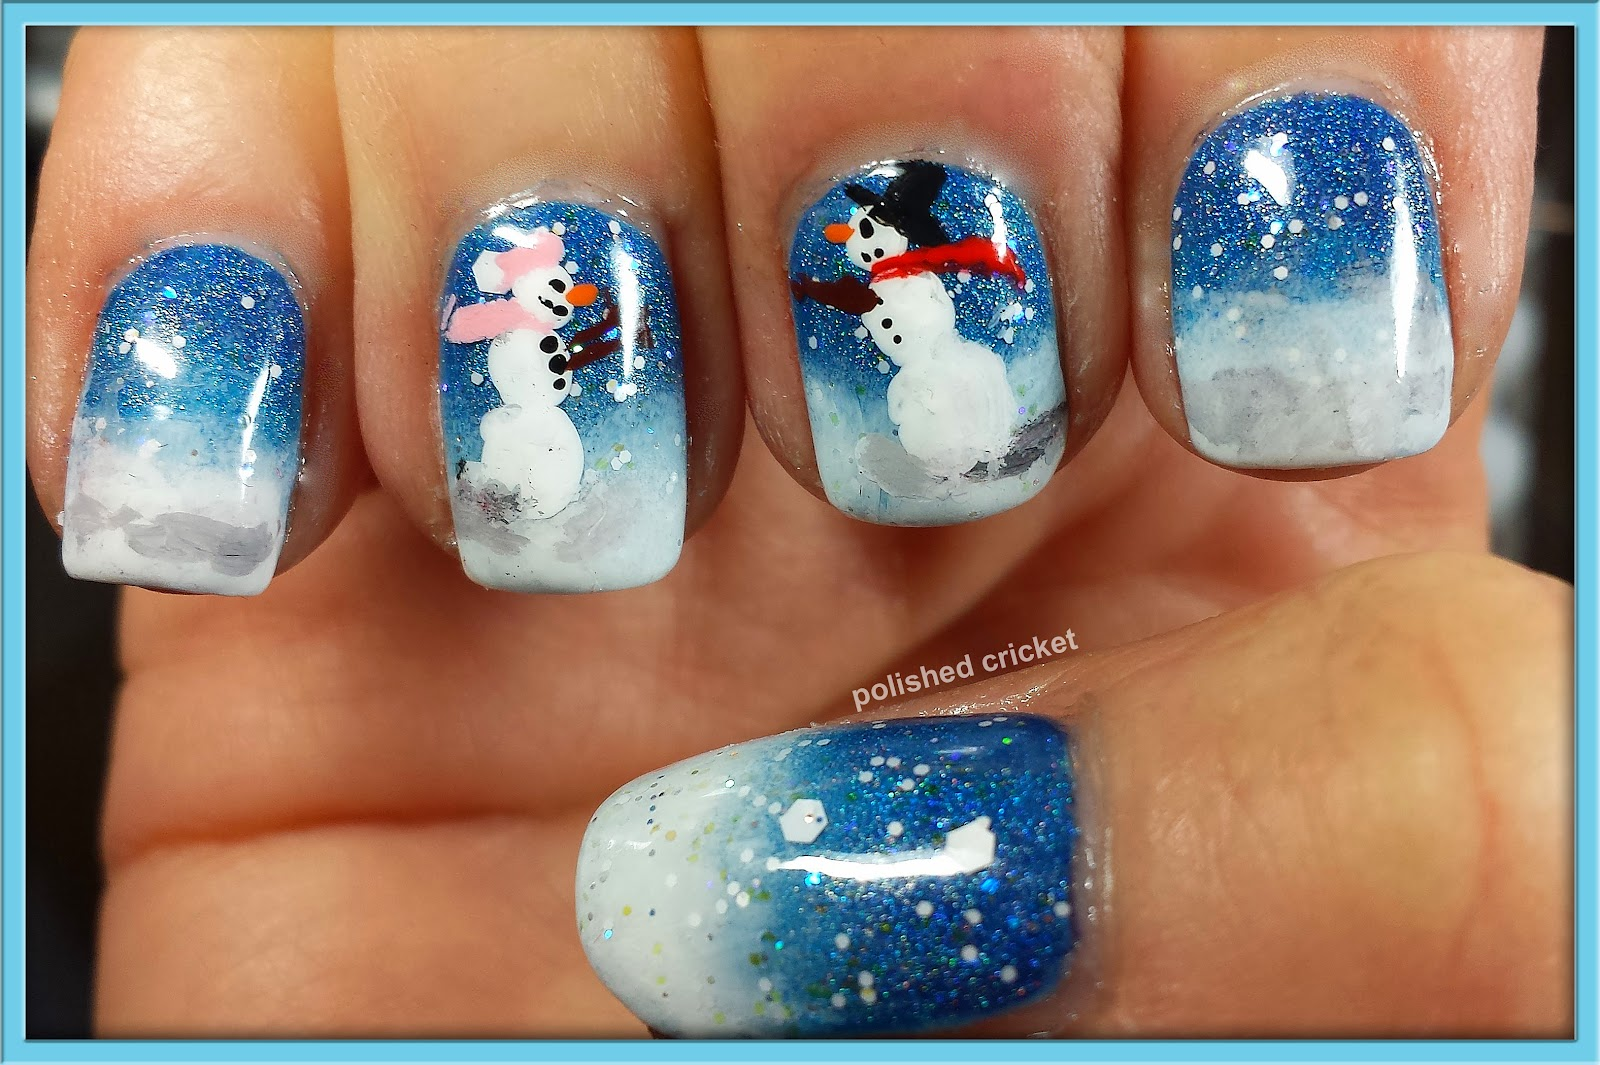 2013 nail polish canada holiday nail art challenge week 1 snow ah makes me want it to be winter forever for these two i hope you enjoyed this winter love story and nail art as much as i enjoyed creating it prinsesfo Gallery